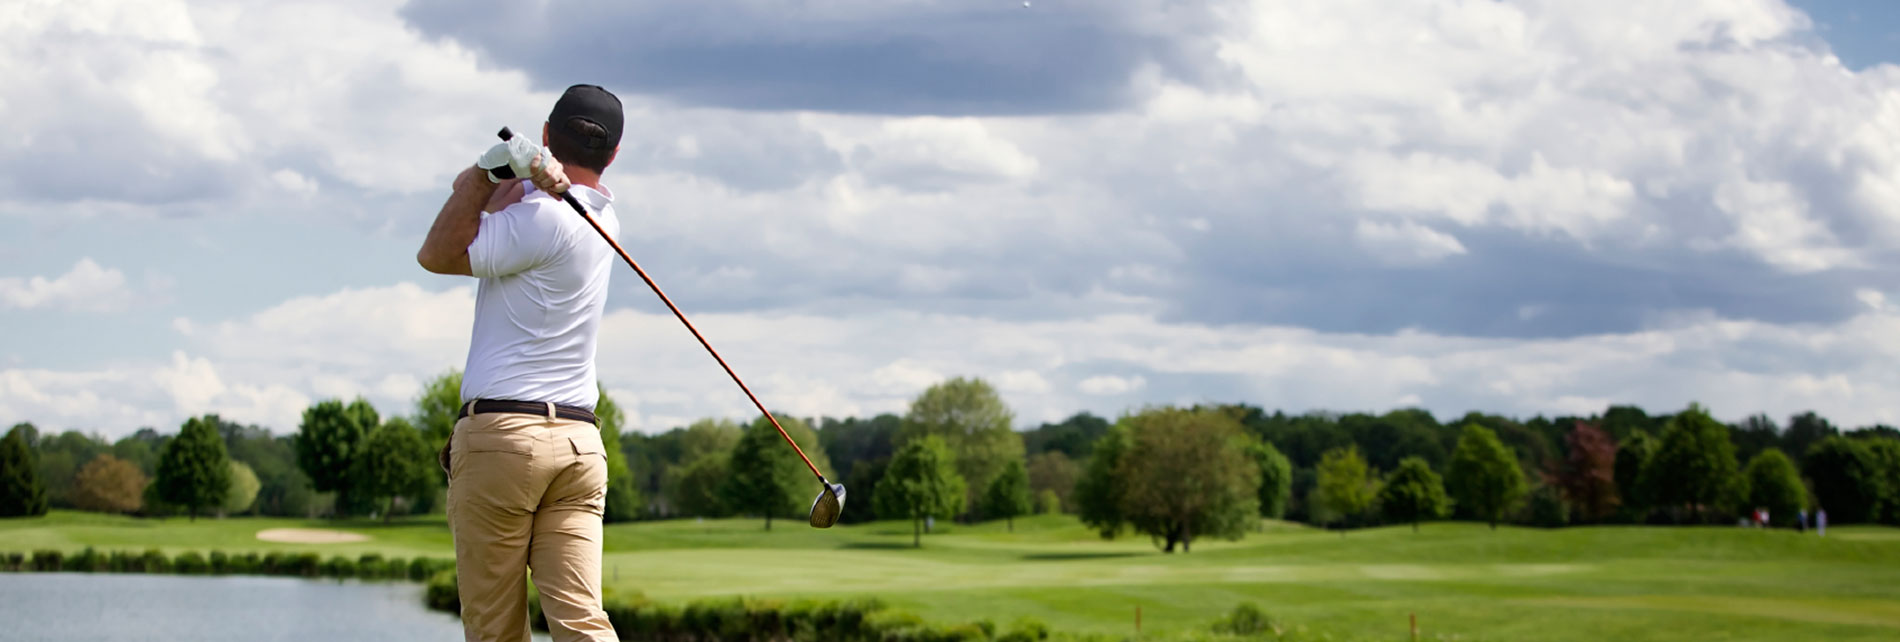 Search Golf Course Homes for Sale